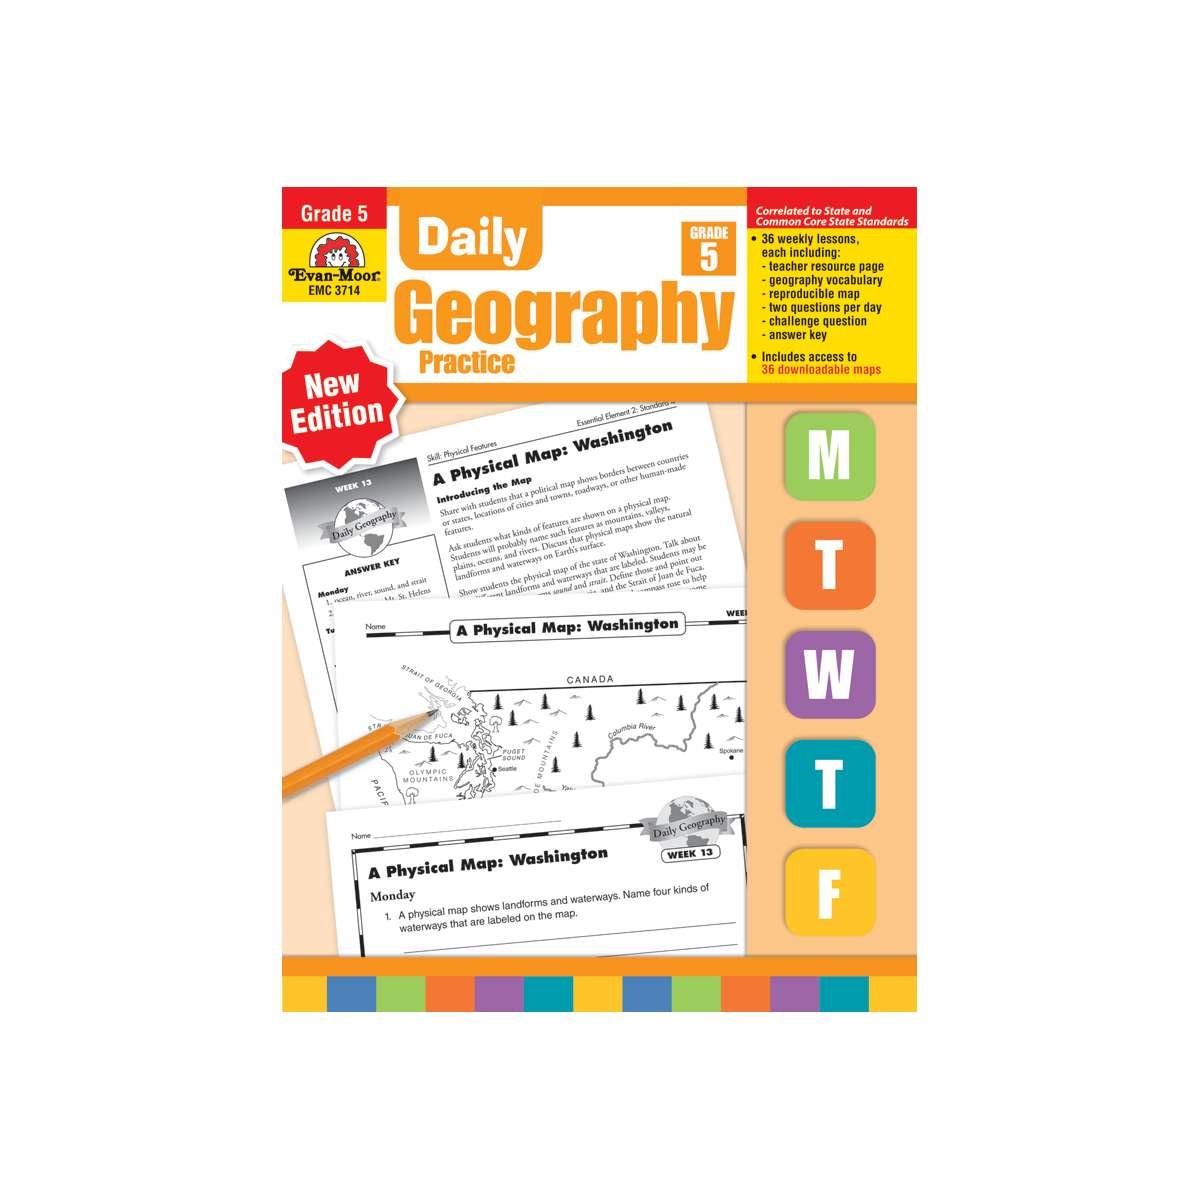 Daily Geography Practice Grade 5 Emc